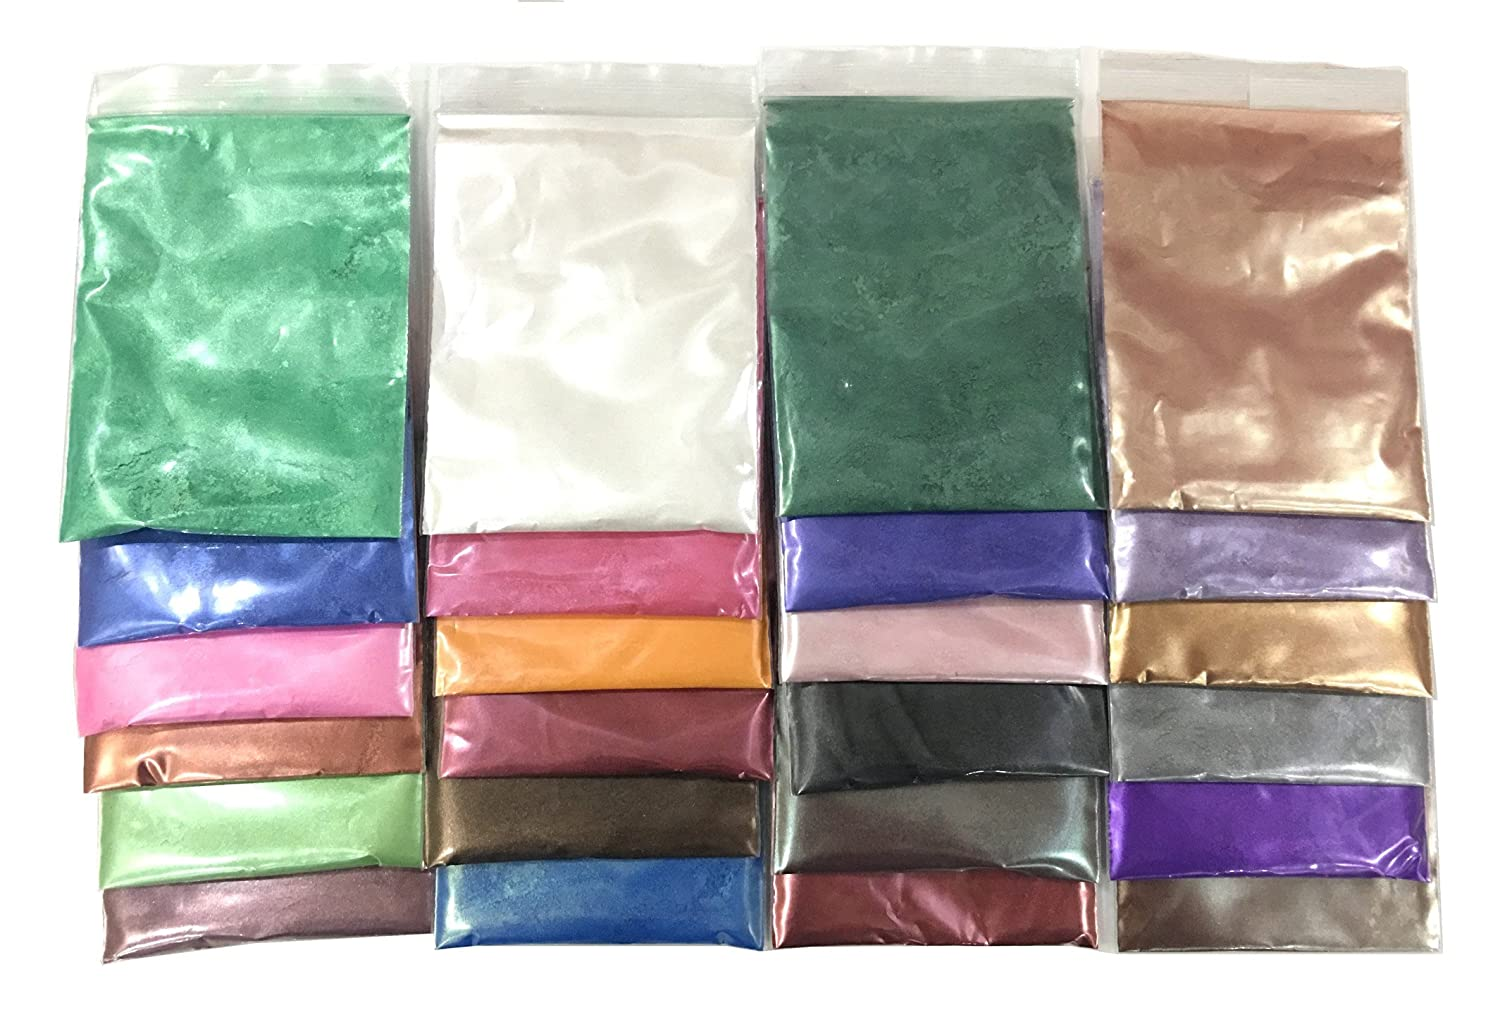 Soap Dye - Mica Powder Pigments for bath bomb - Soap Making Colorant - 24 Colors (0.21 oz each) - Candle Making, Eye Shadow, Blush, Nail Art, Resin Jewelry, Artist, Craft Projects Kiikool 4336900732